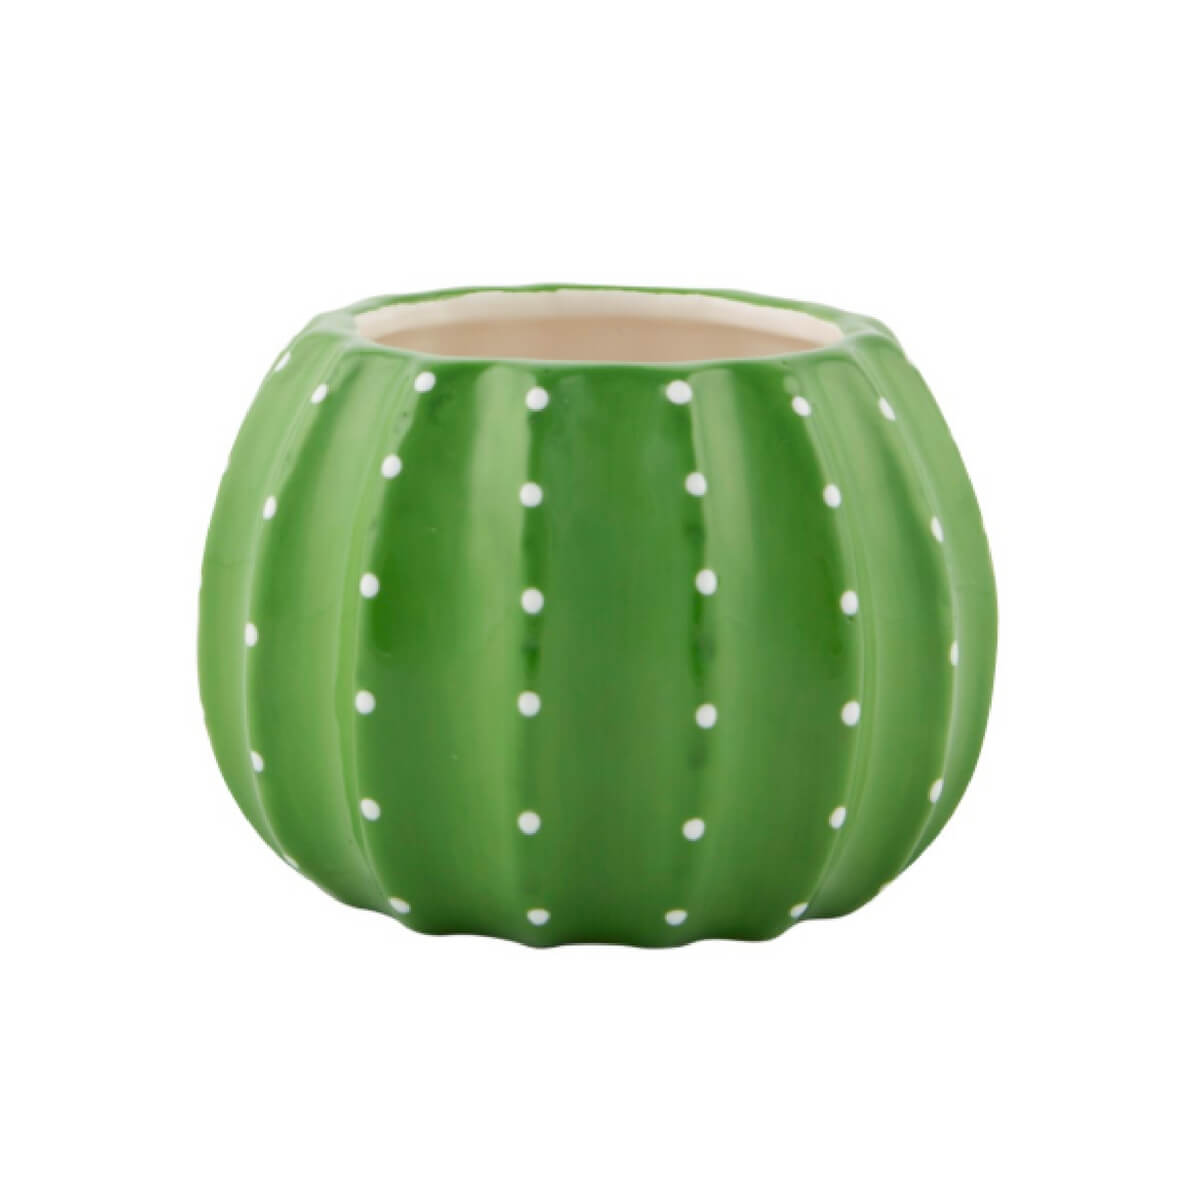 Little green cactus planter